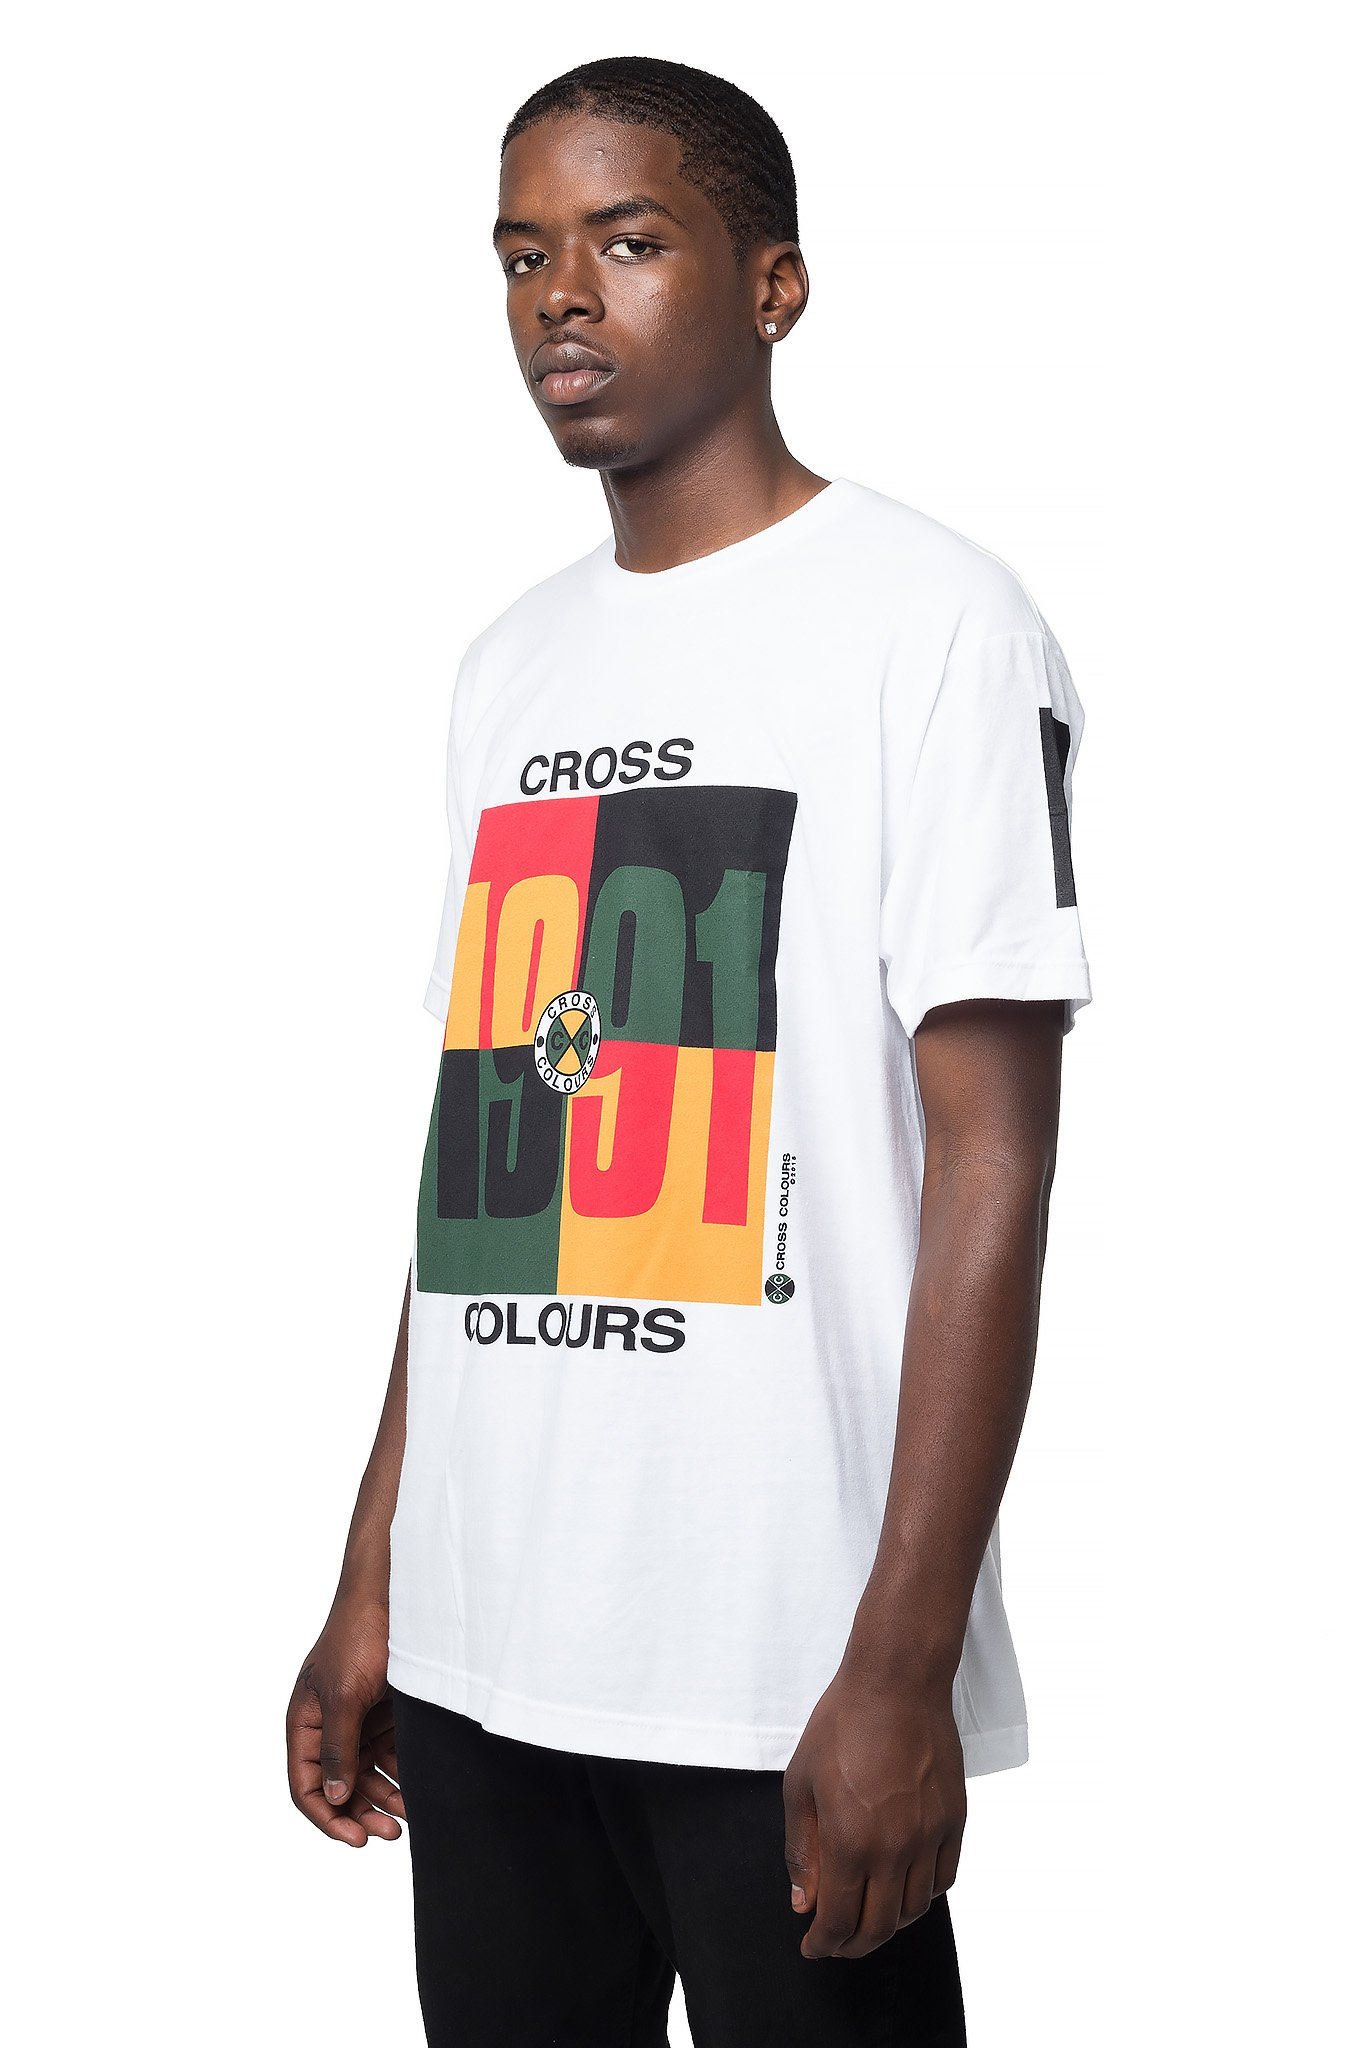 Cross_Colours_1991_TShirt__White